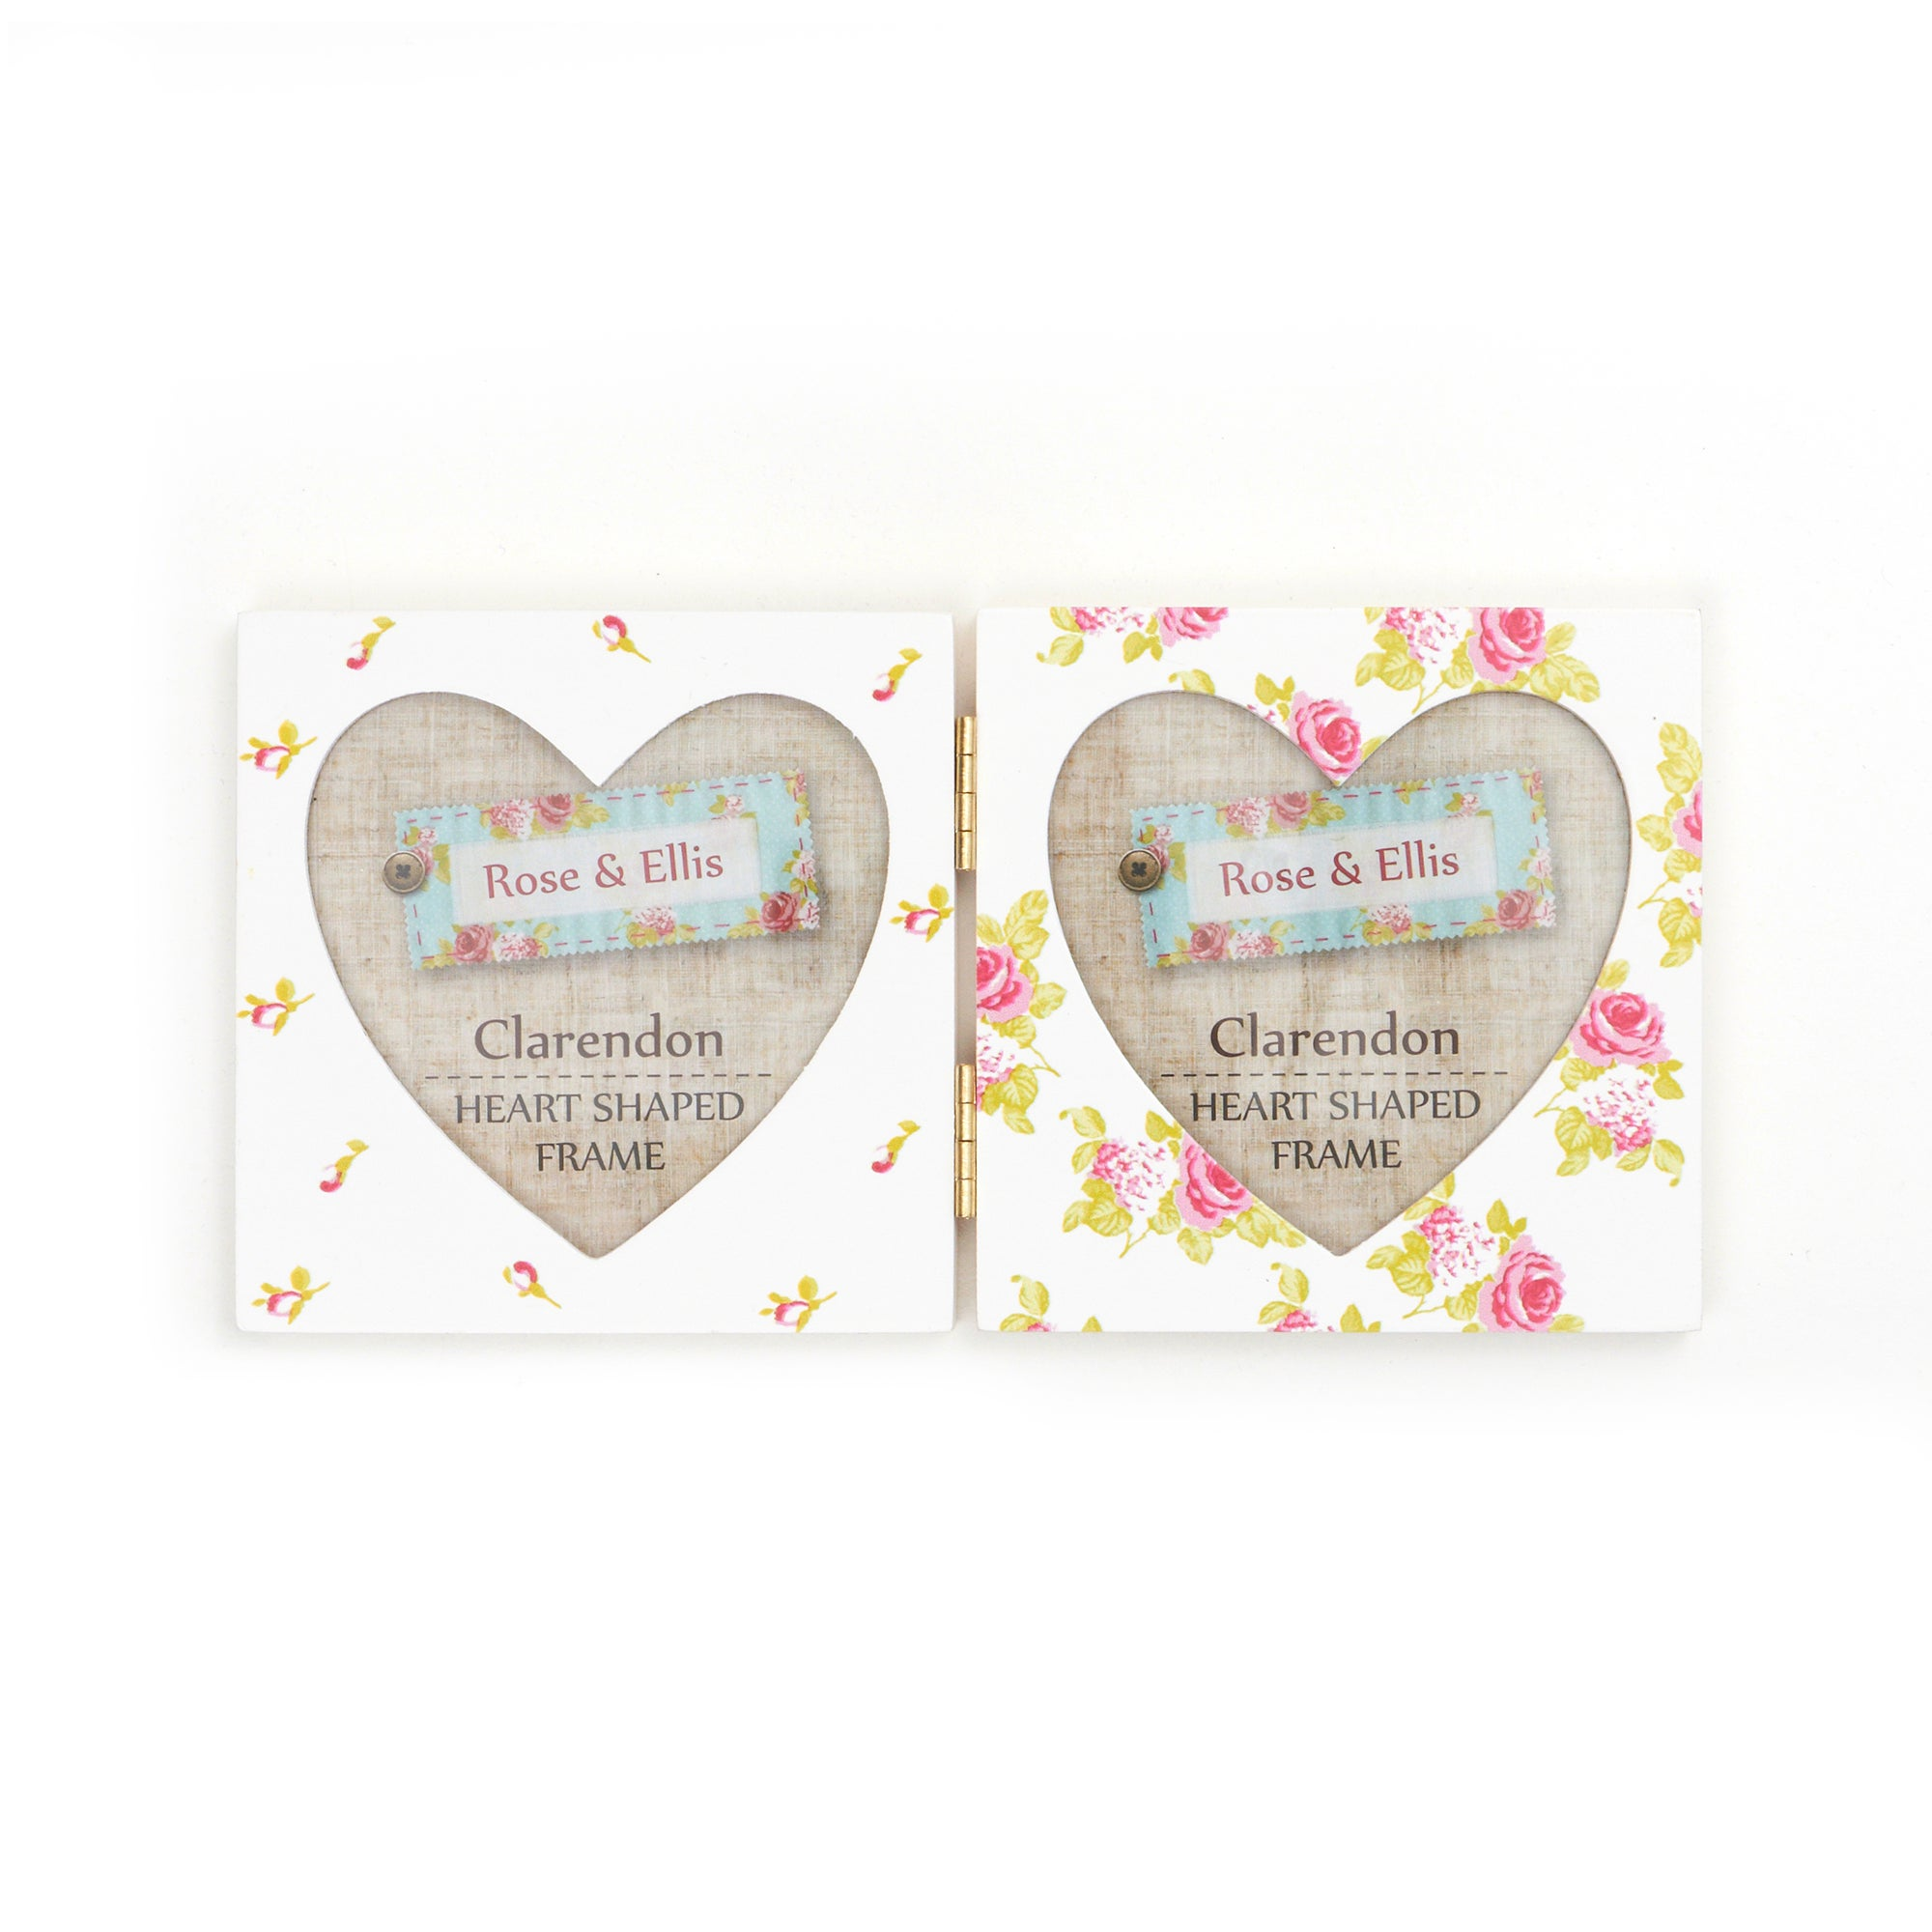 Rose and Ellis Clarendon Collection 2 Aperture Heart Photo Frame